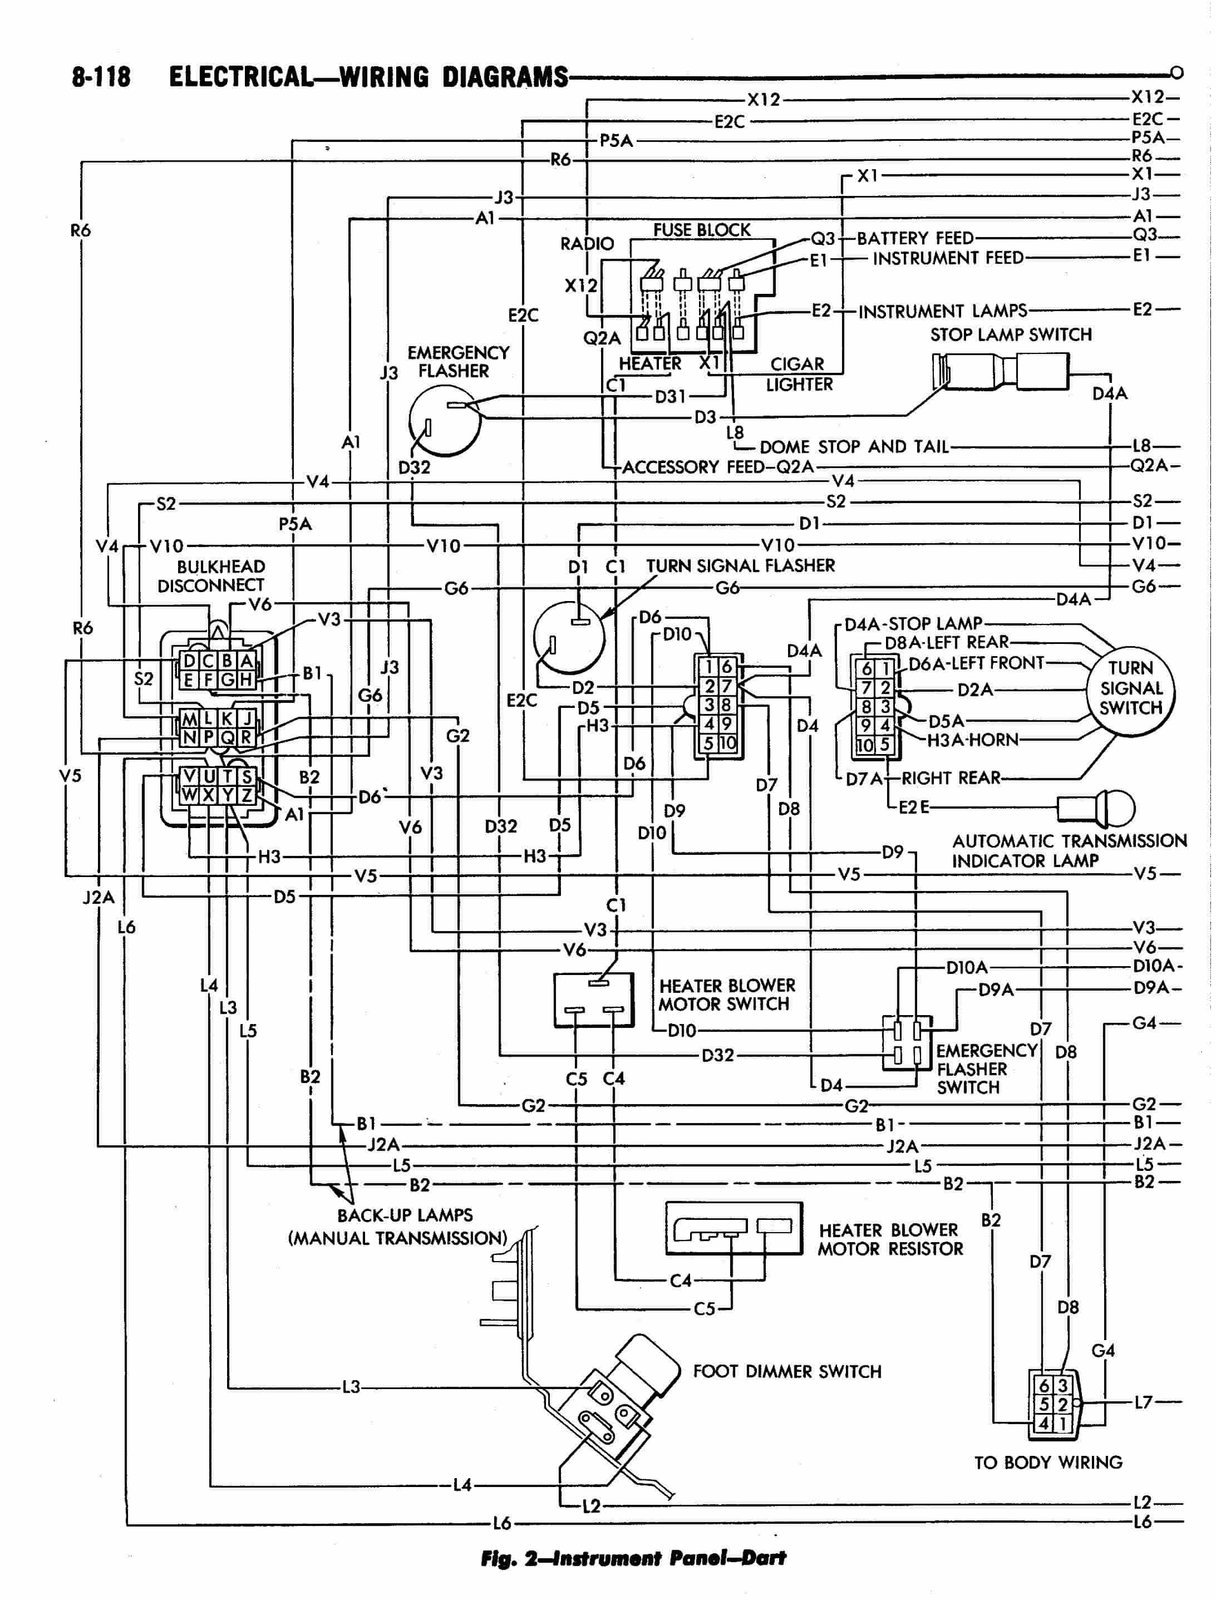 simple car wiring diagrams e34 diagram rocket engine html imageresizertool com